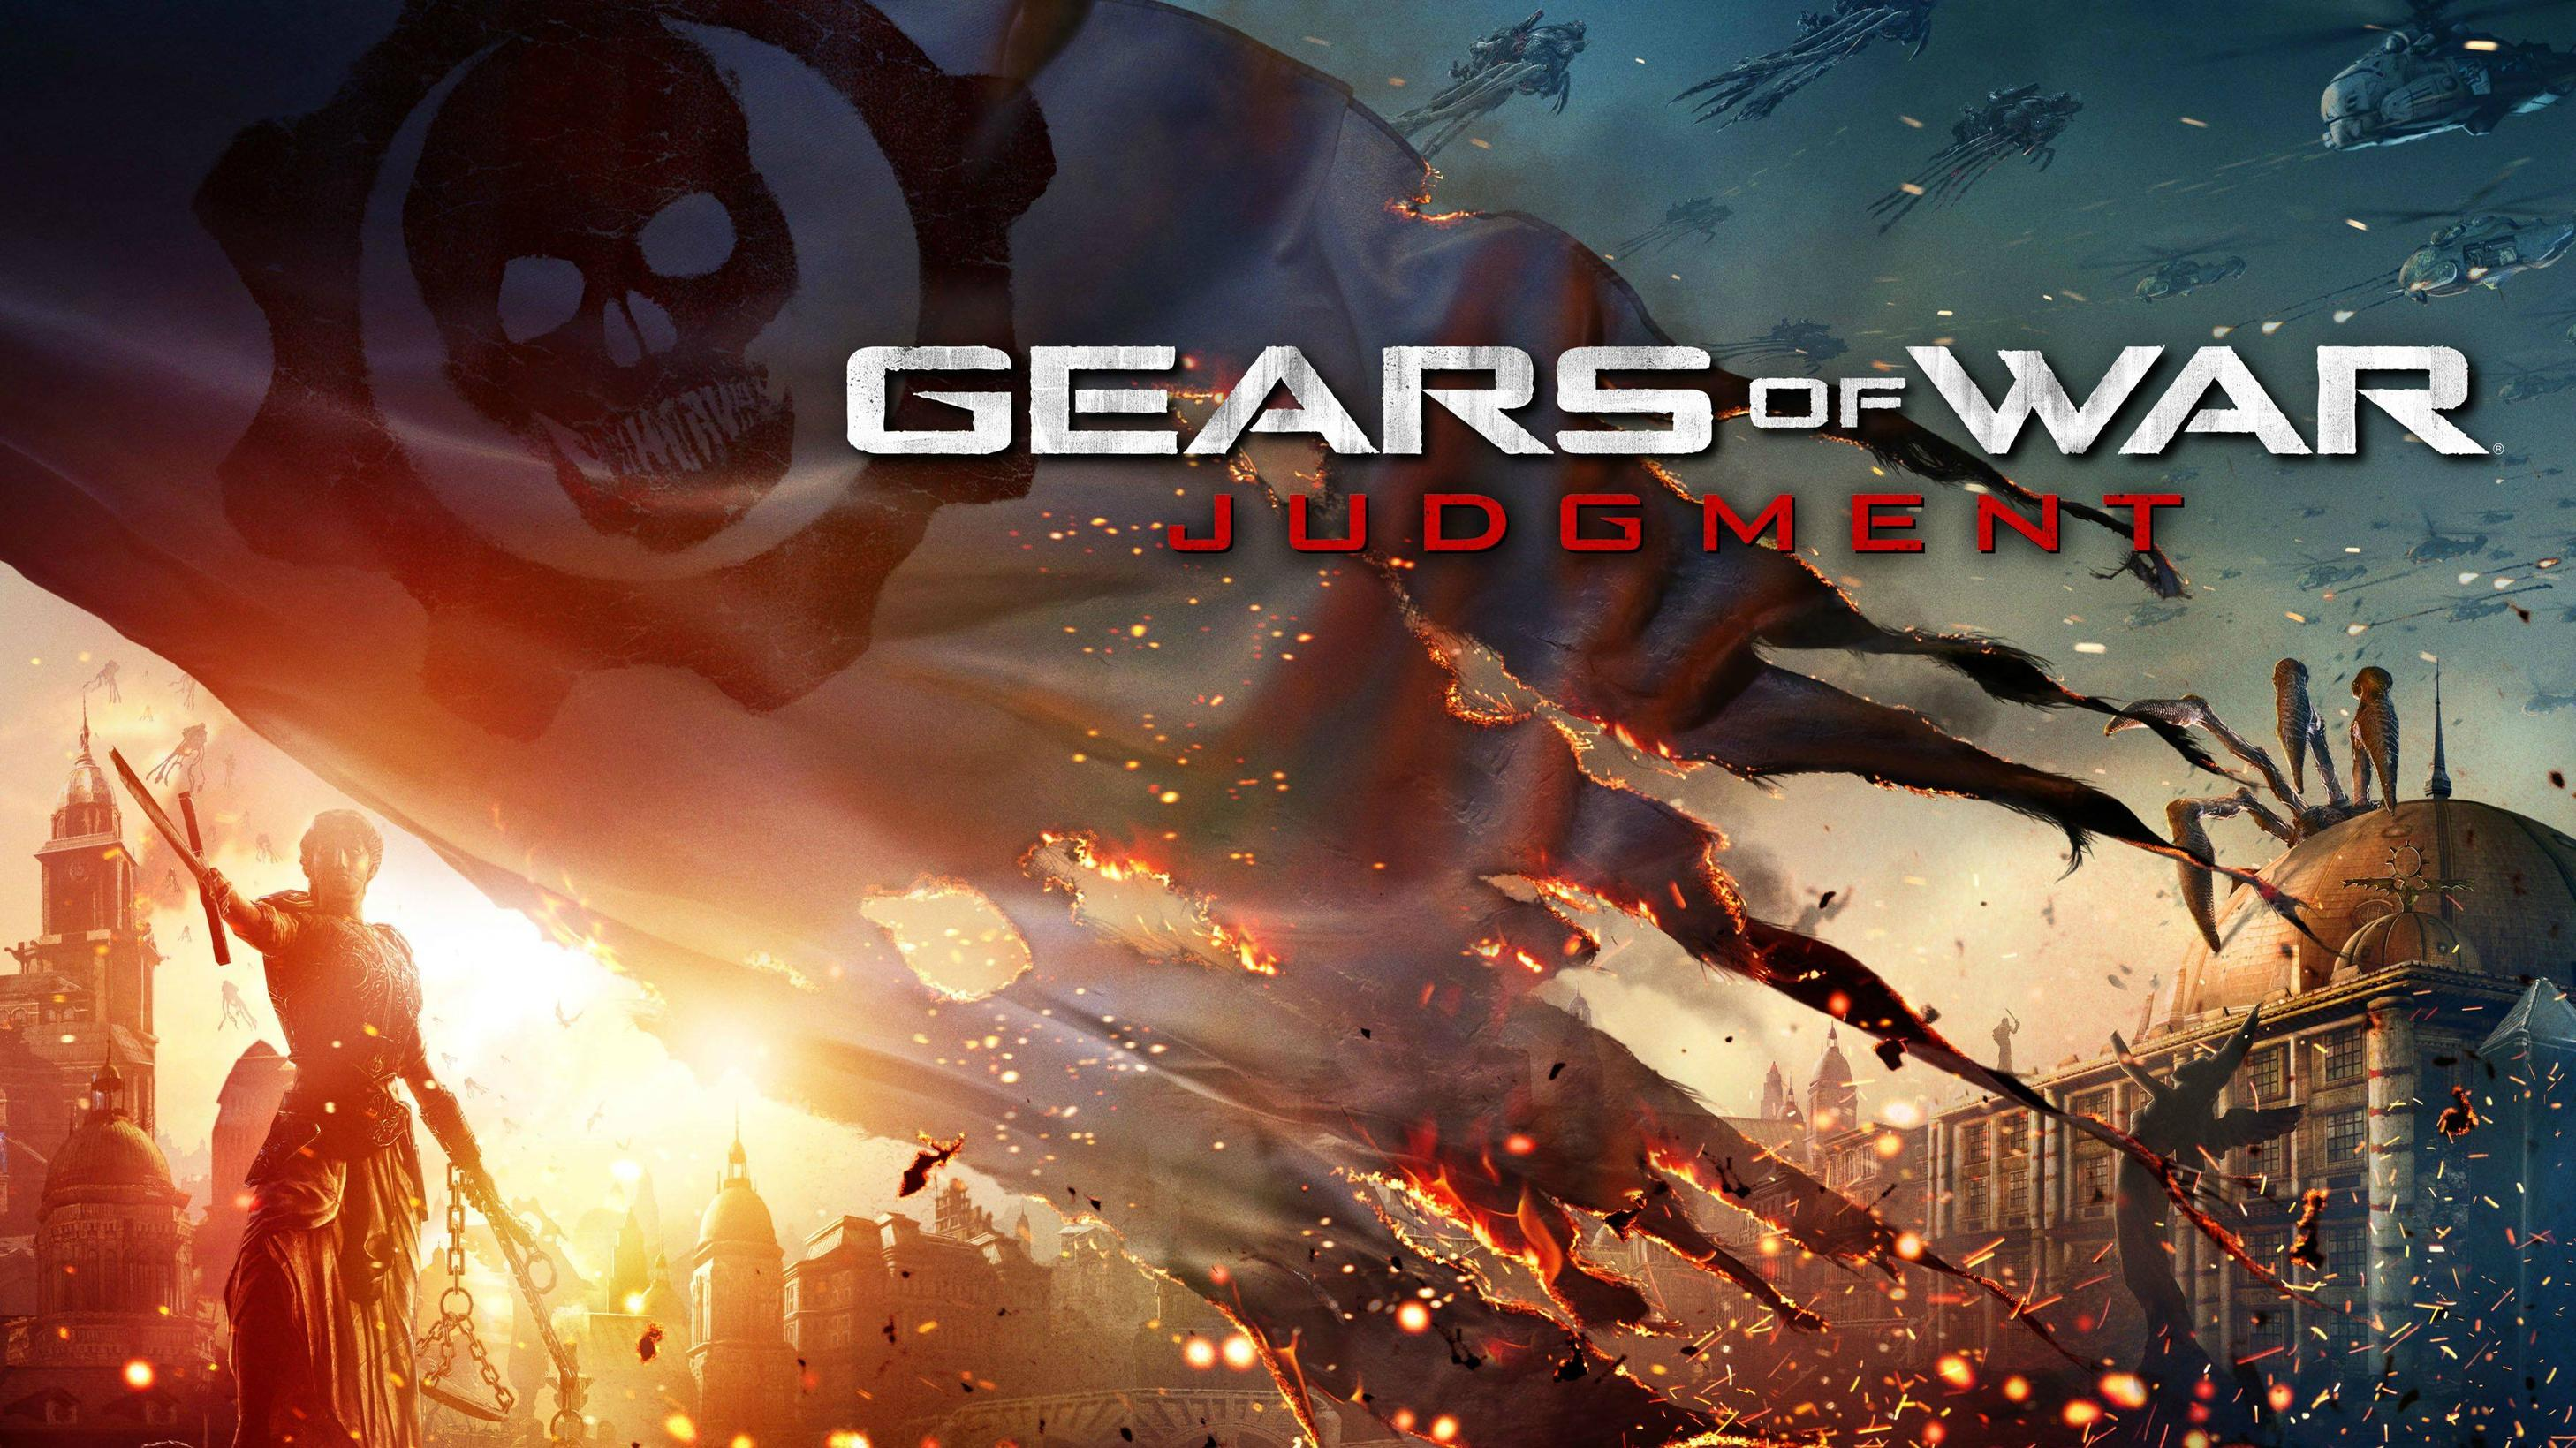 Gears of War Judgement wallpaper 1